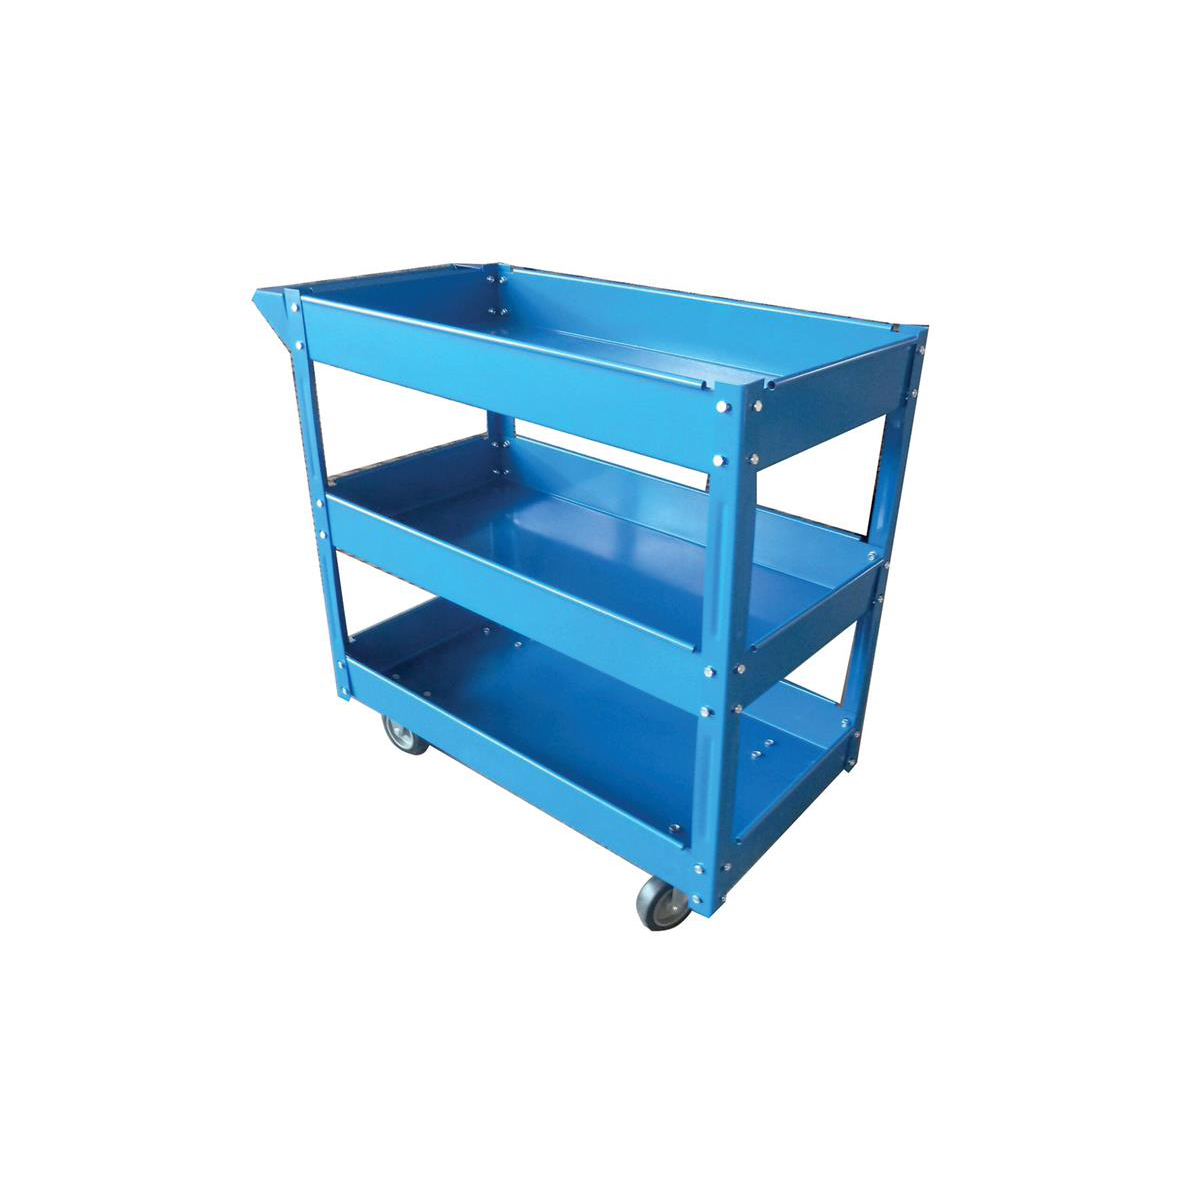 Trolleys 5 Star Facilities serving Trolley 3 Tier W460xD865xH840mm Blue